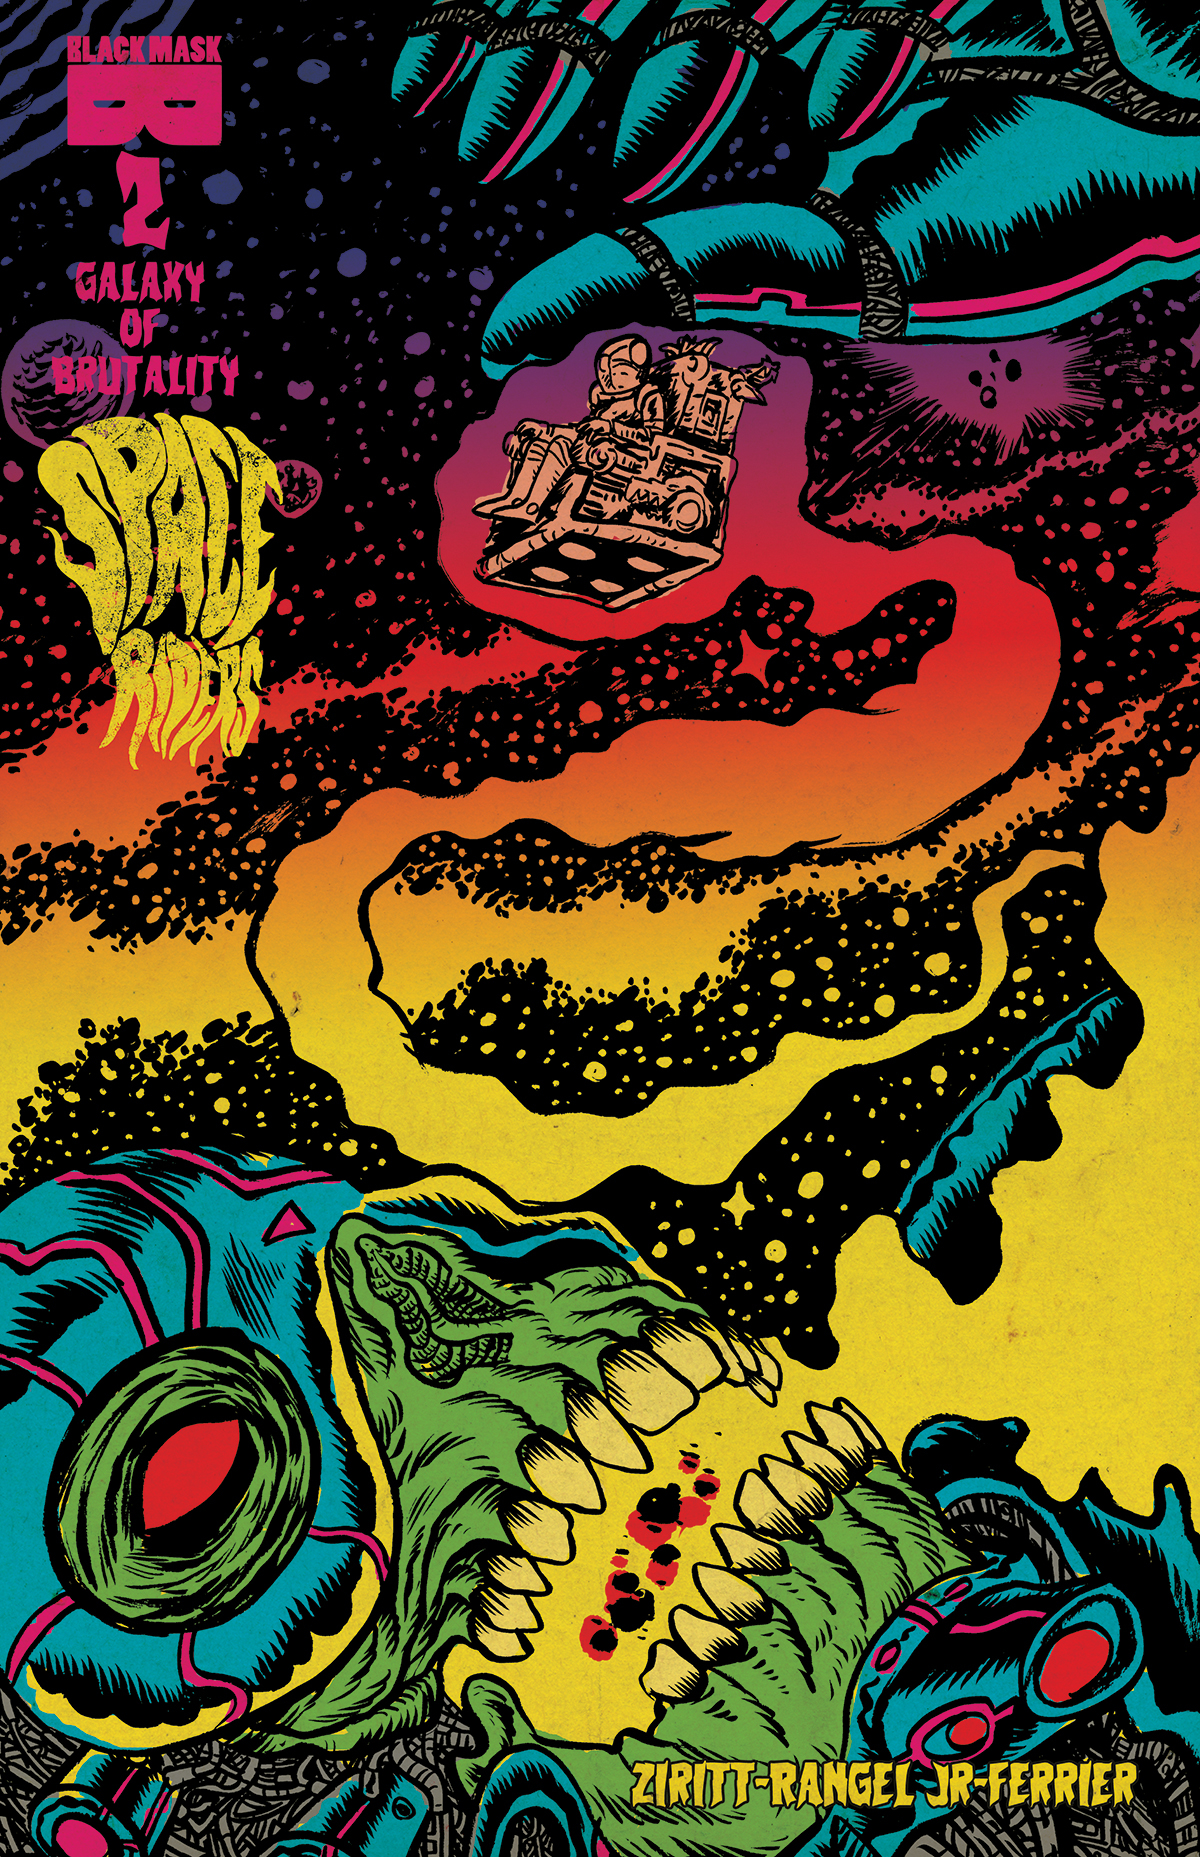 SPACE RIDERS GALAXY OF BRUTALITY #2